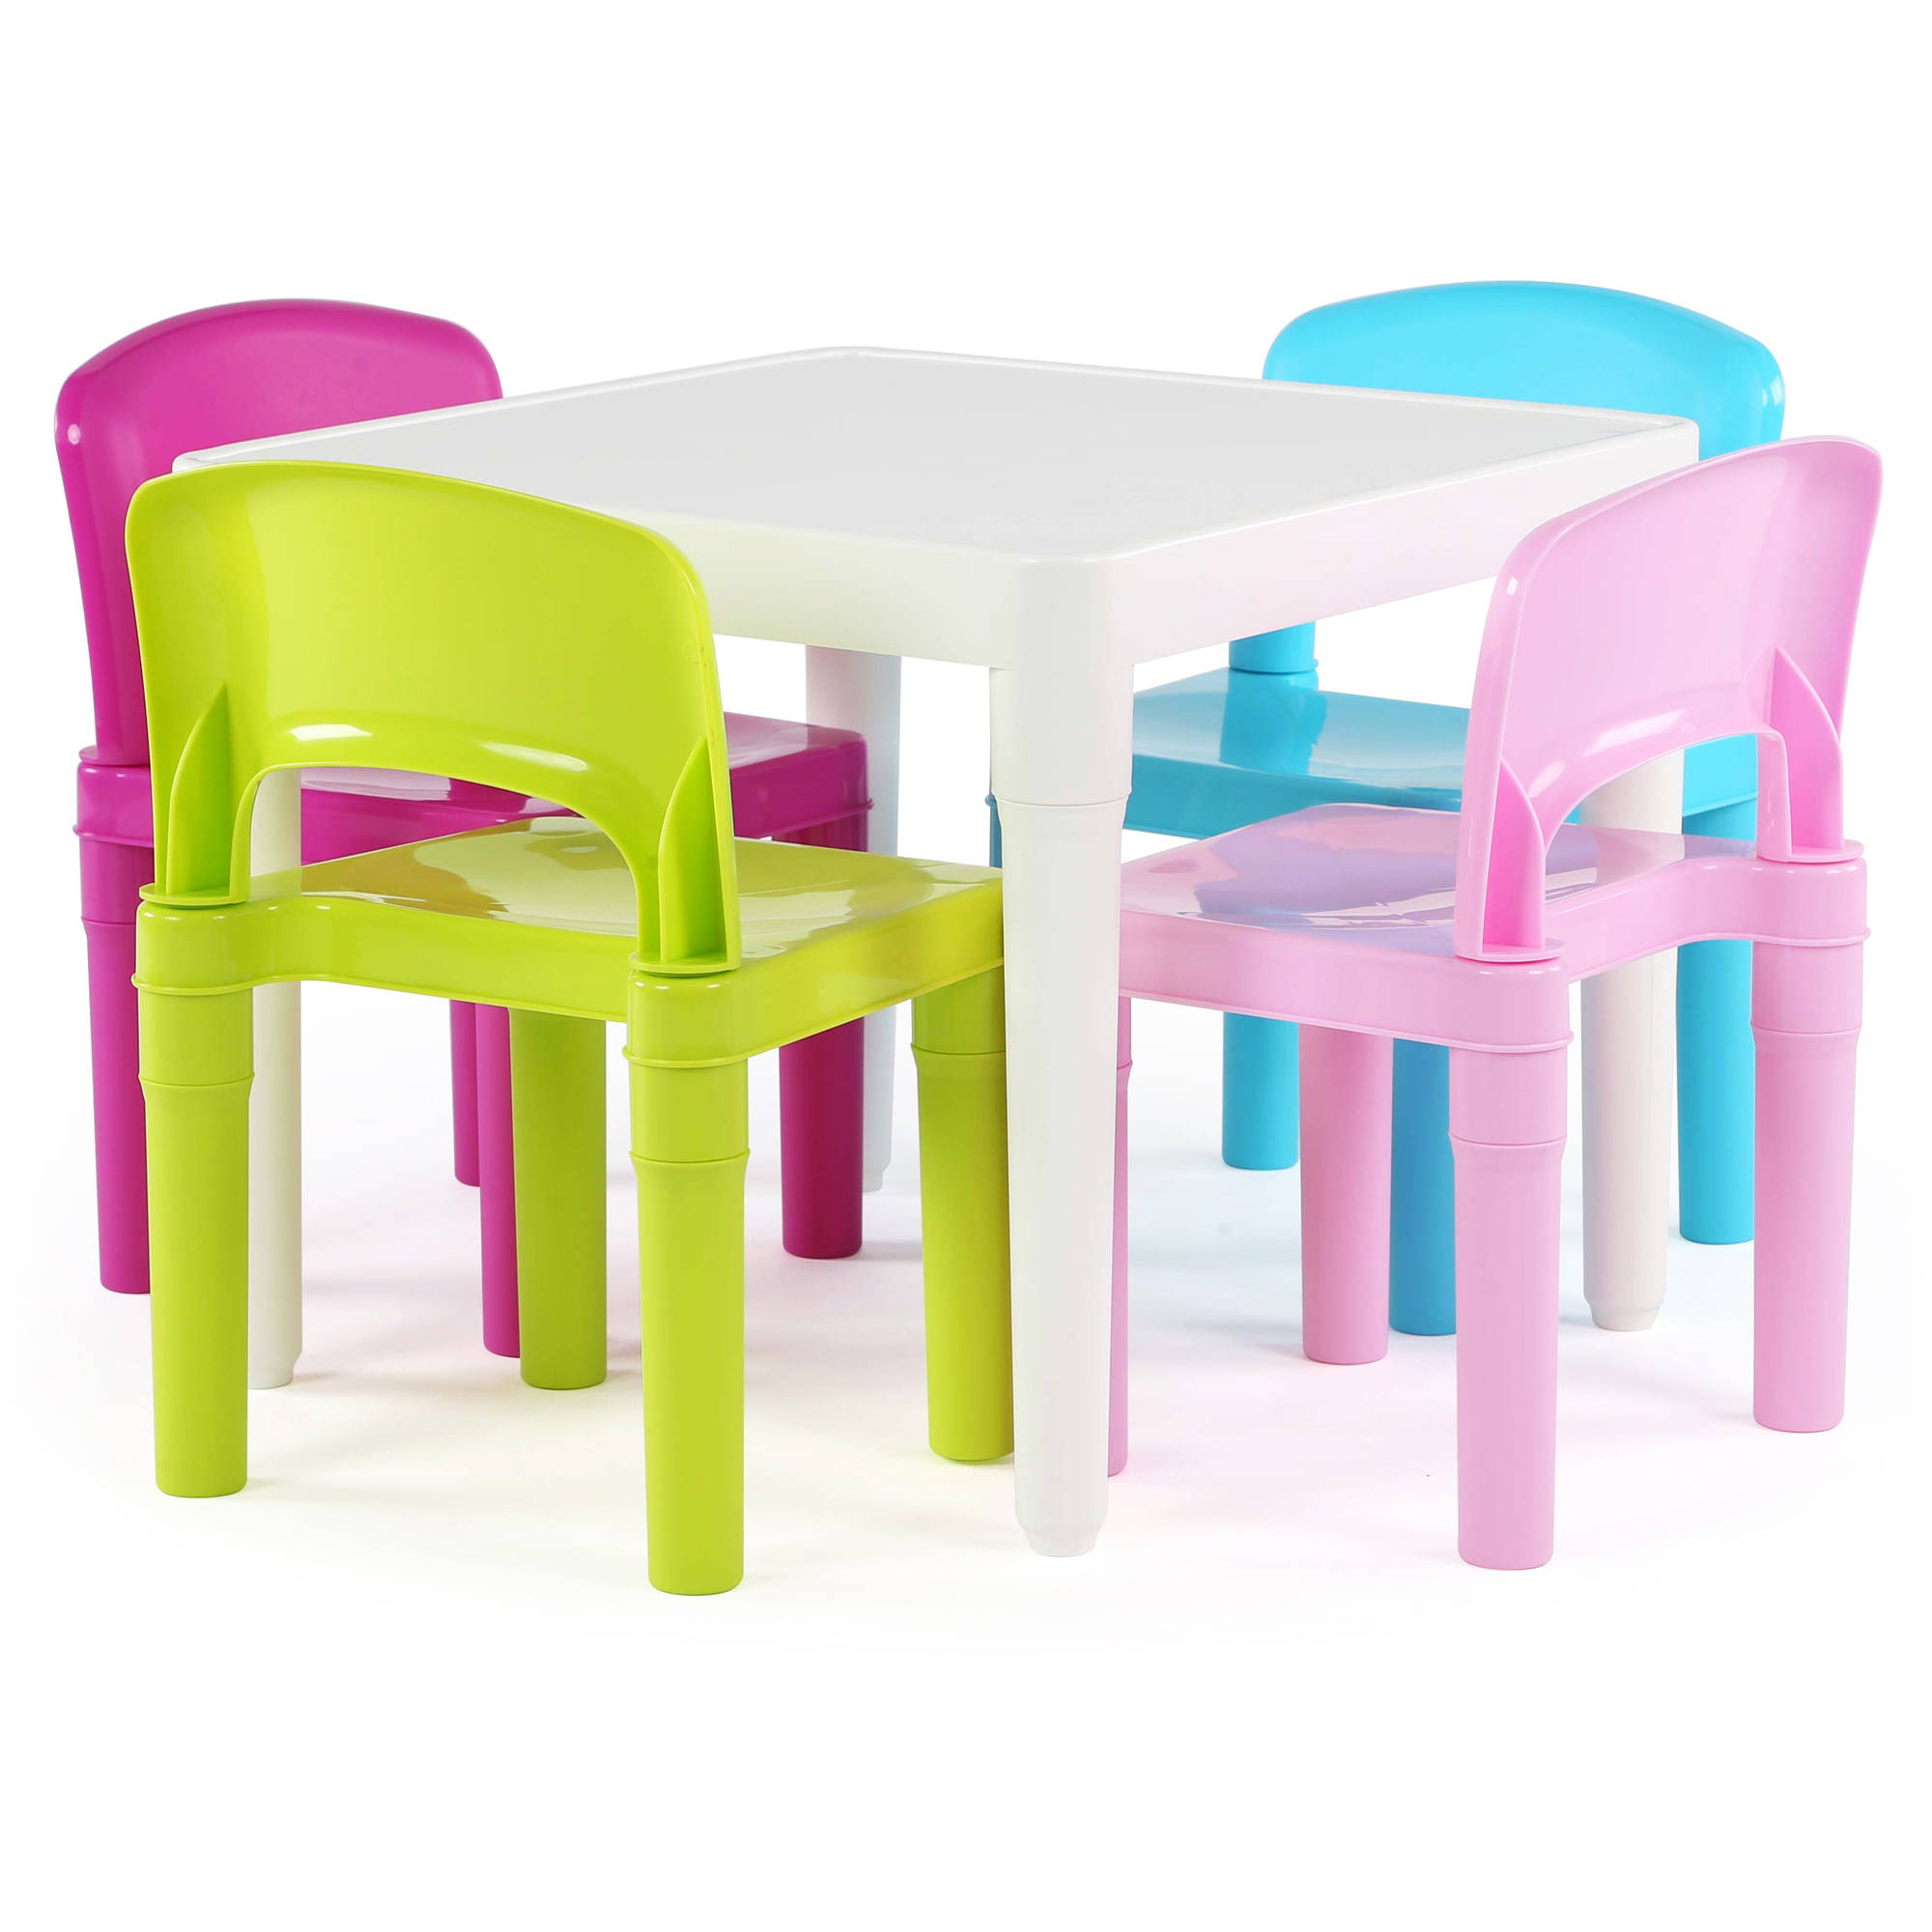 Tot Tutors Kids Plastic Table And 4 Chairs Set, Multiple Colors    Walmart.com